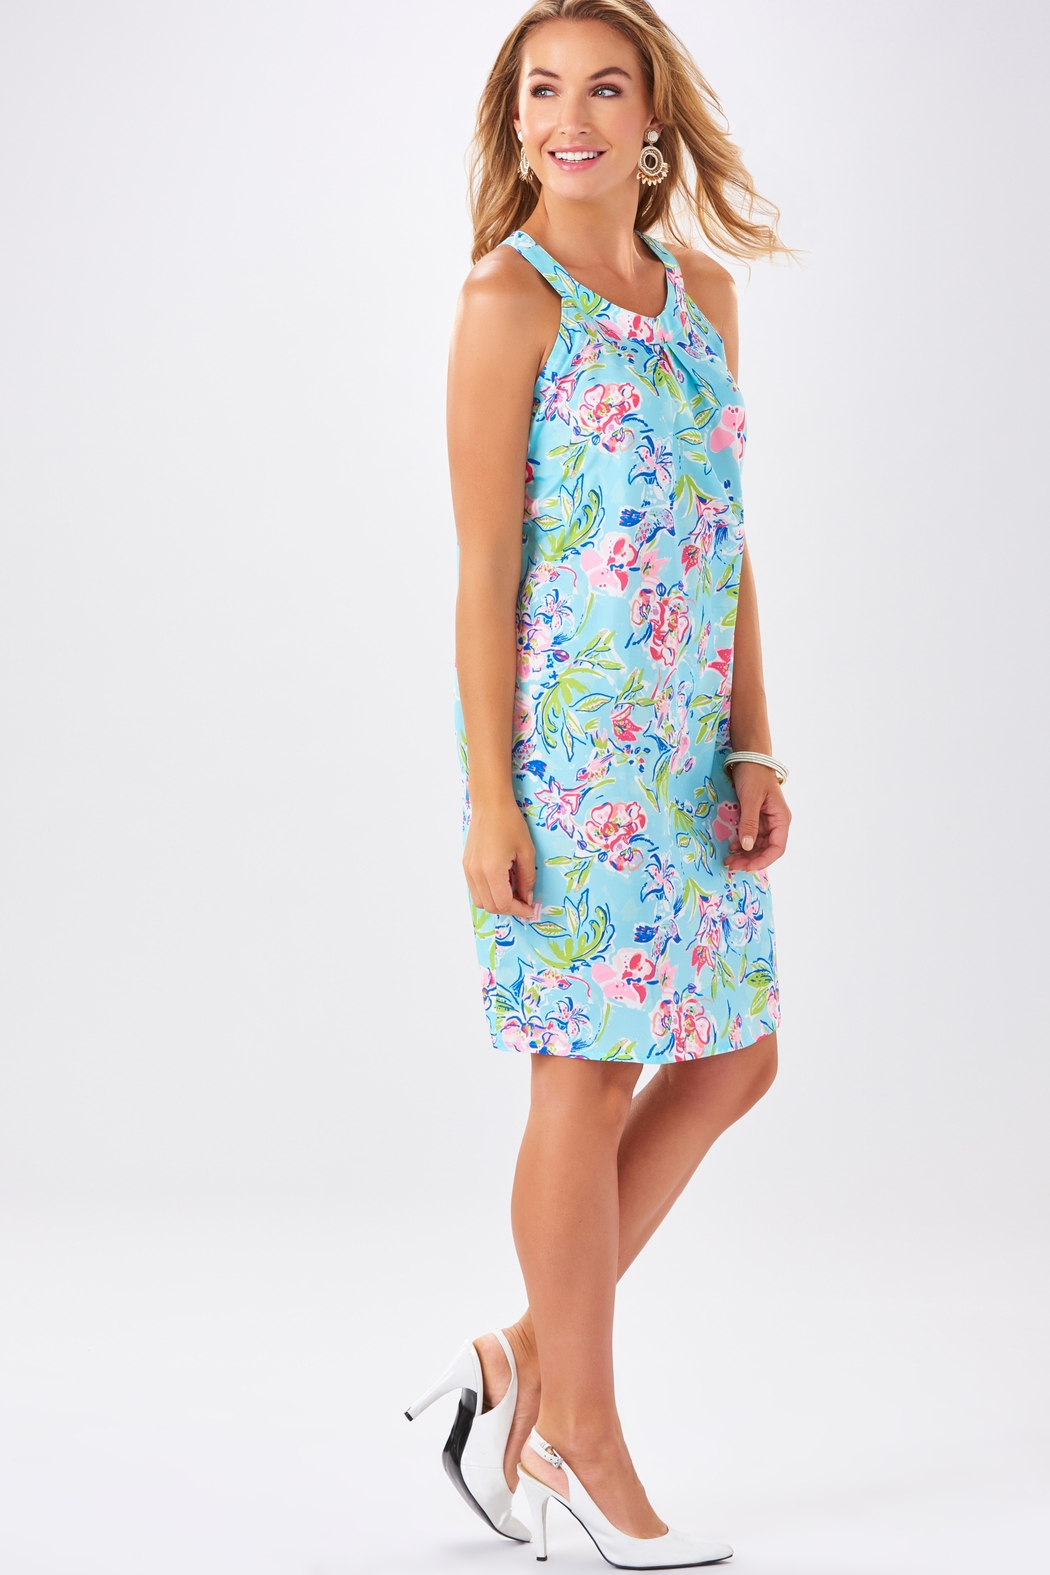 Charlie Paige Watercolor Print Shift Dress - Front Full Image